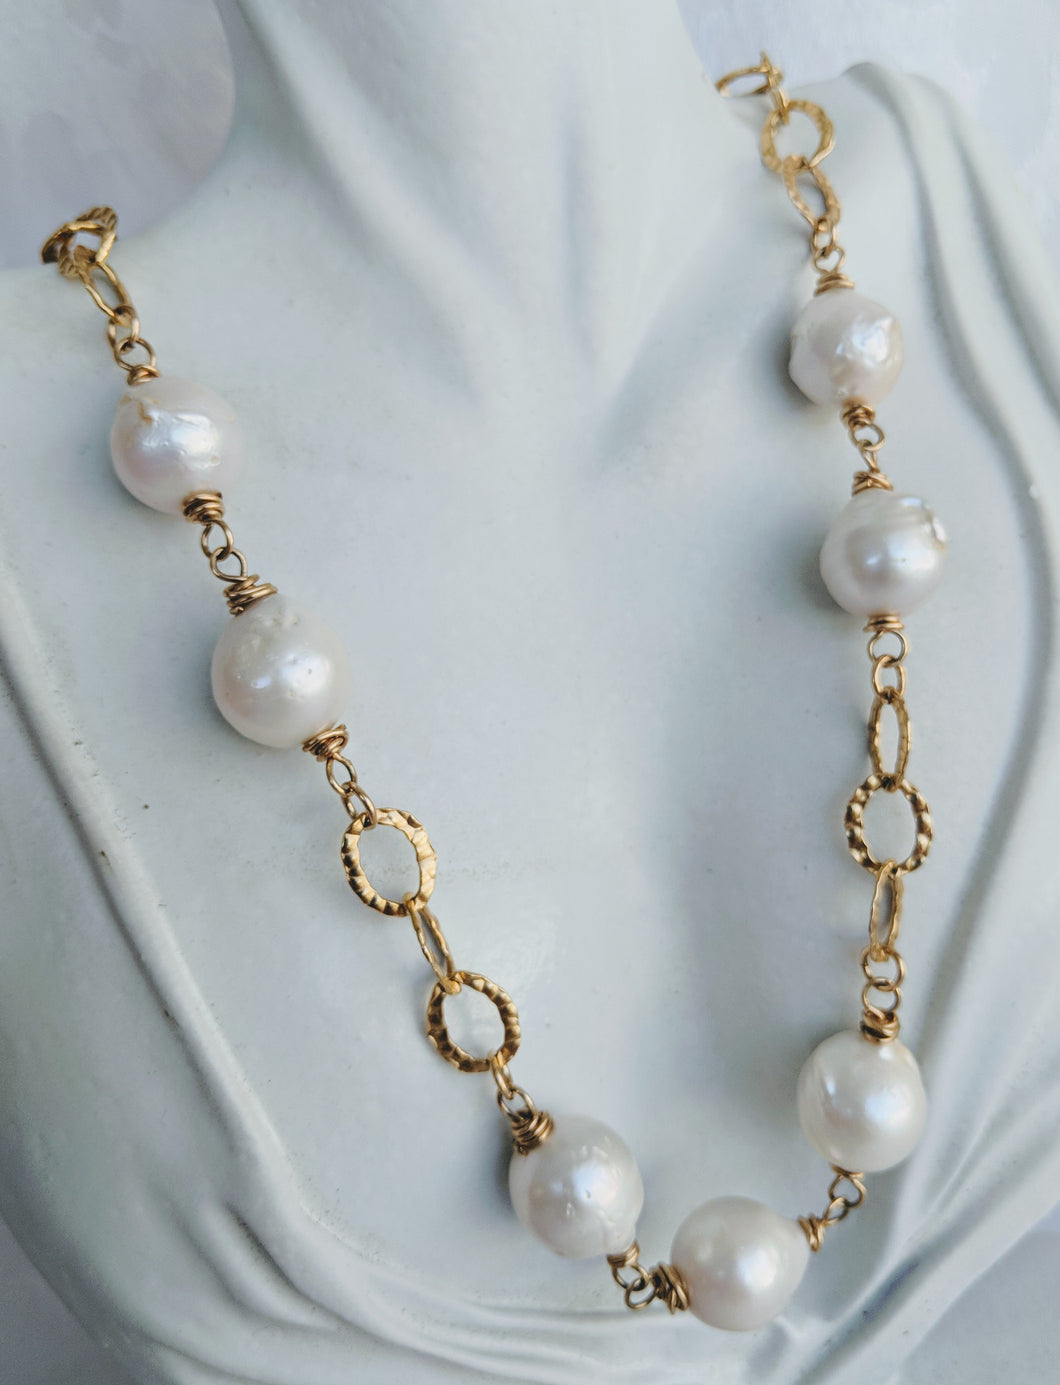 Hammered gold link and pearl necklace